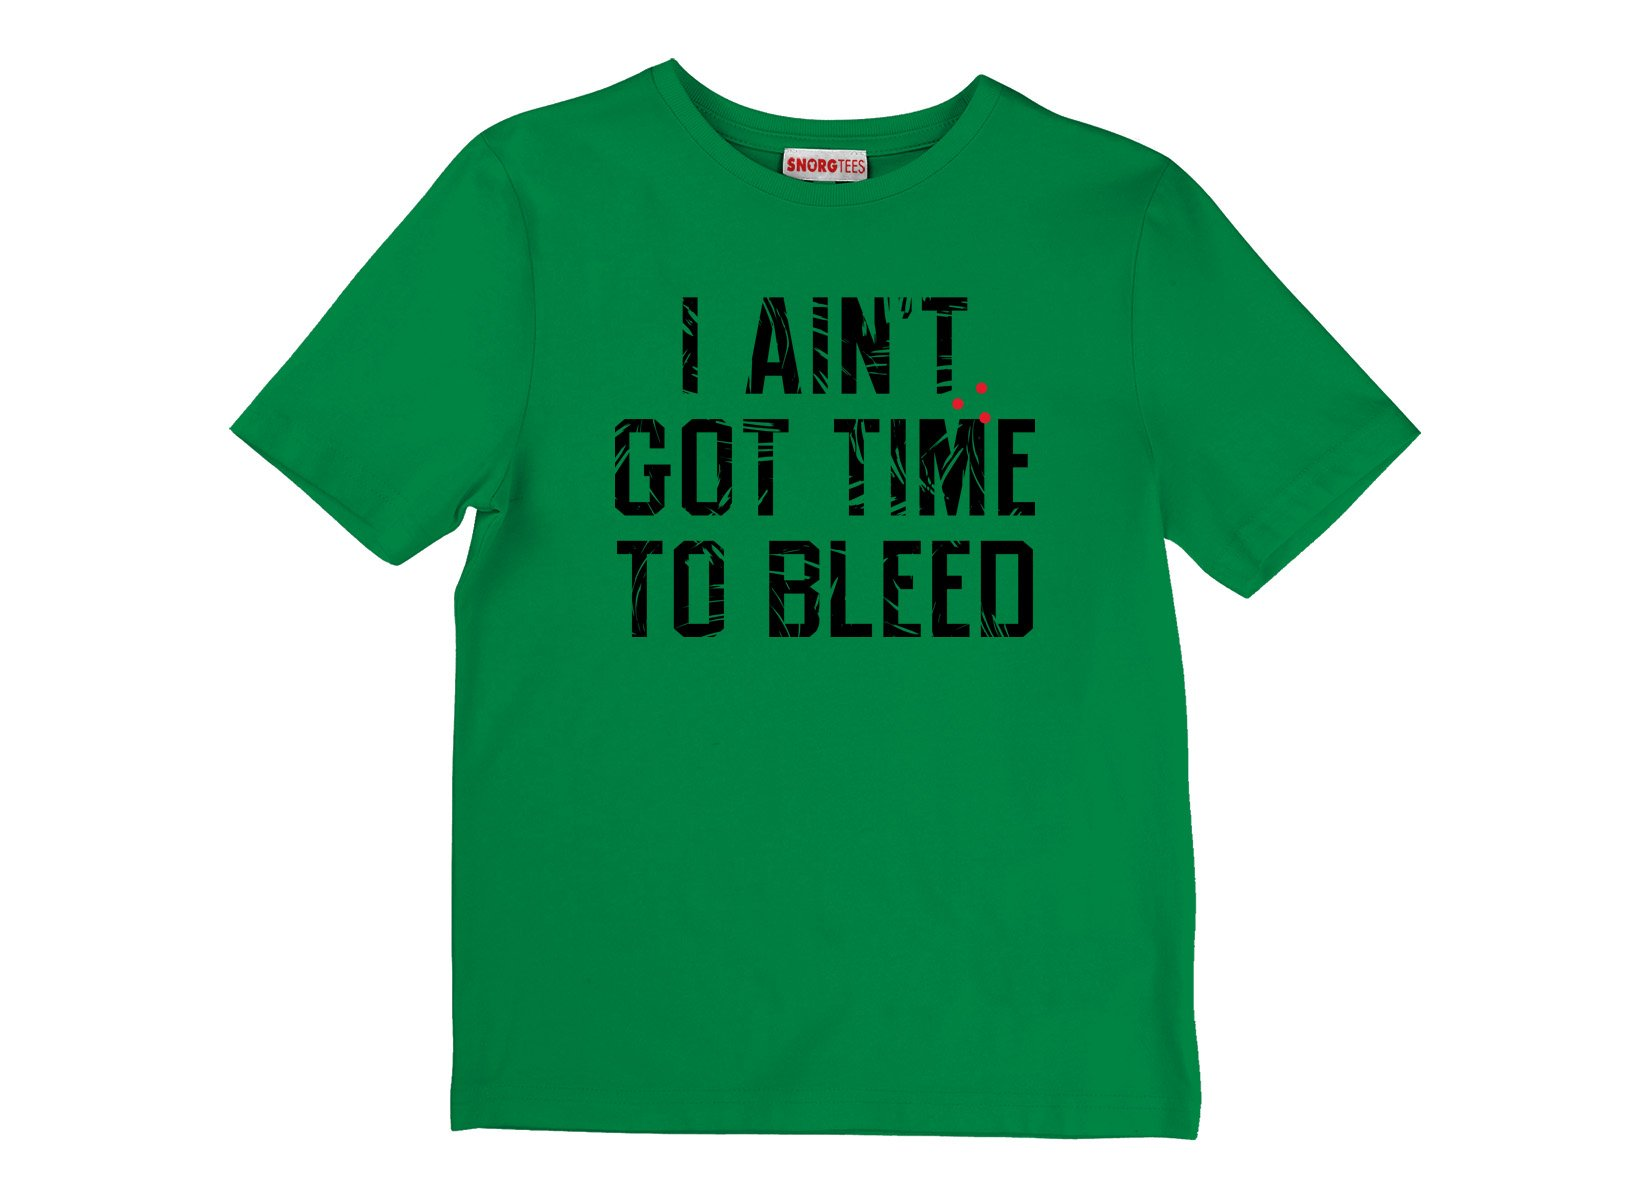 I Ain't Got Time To Bleed on Kids T-Shirt